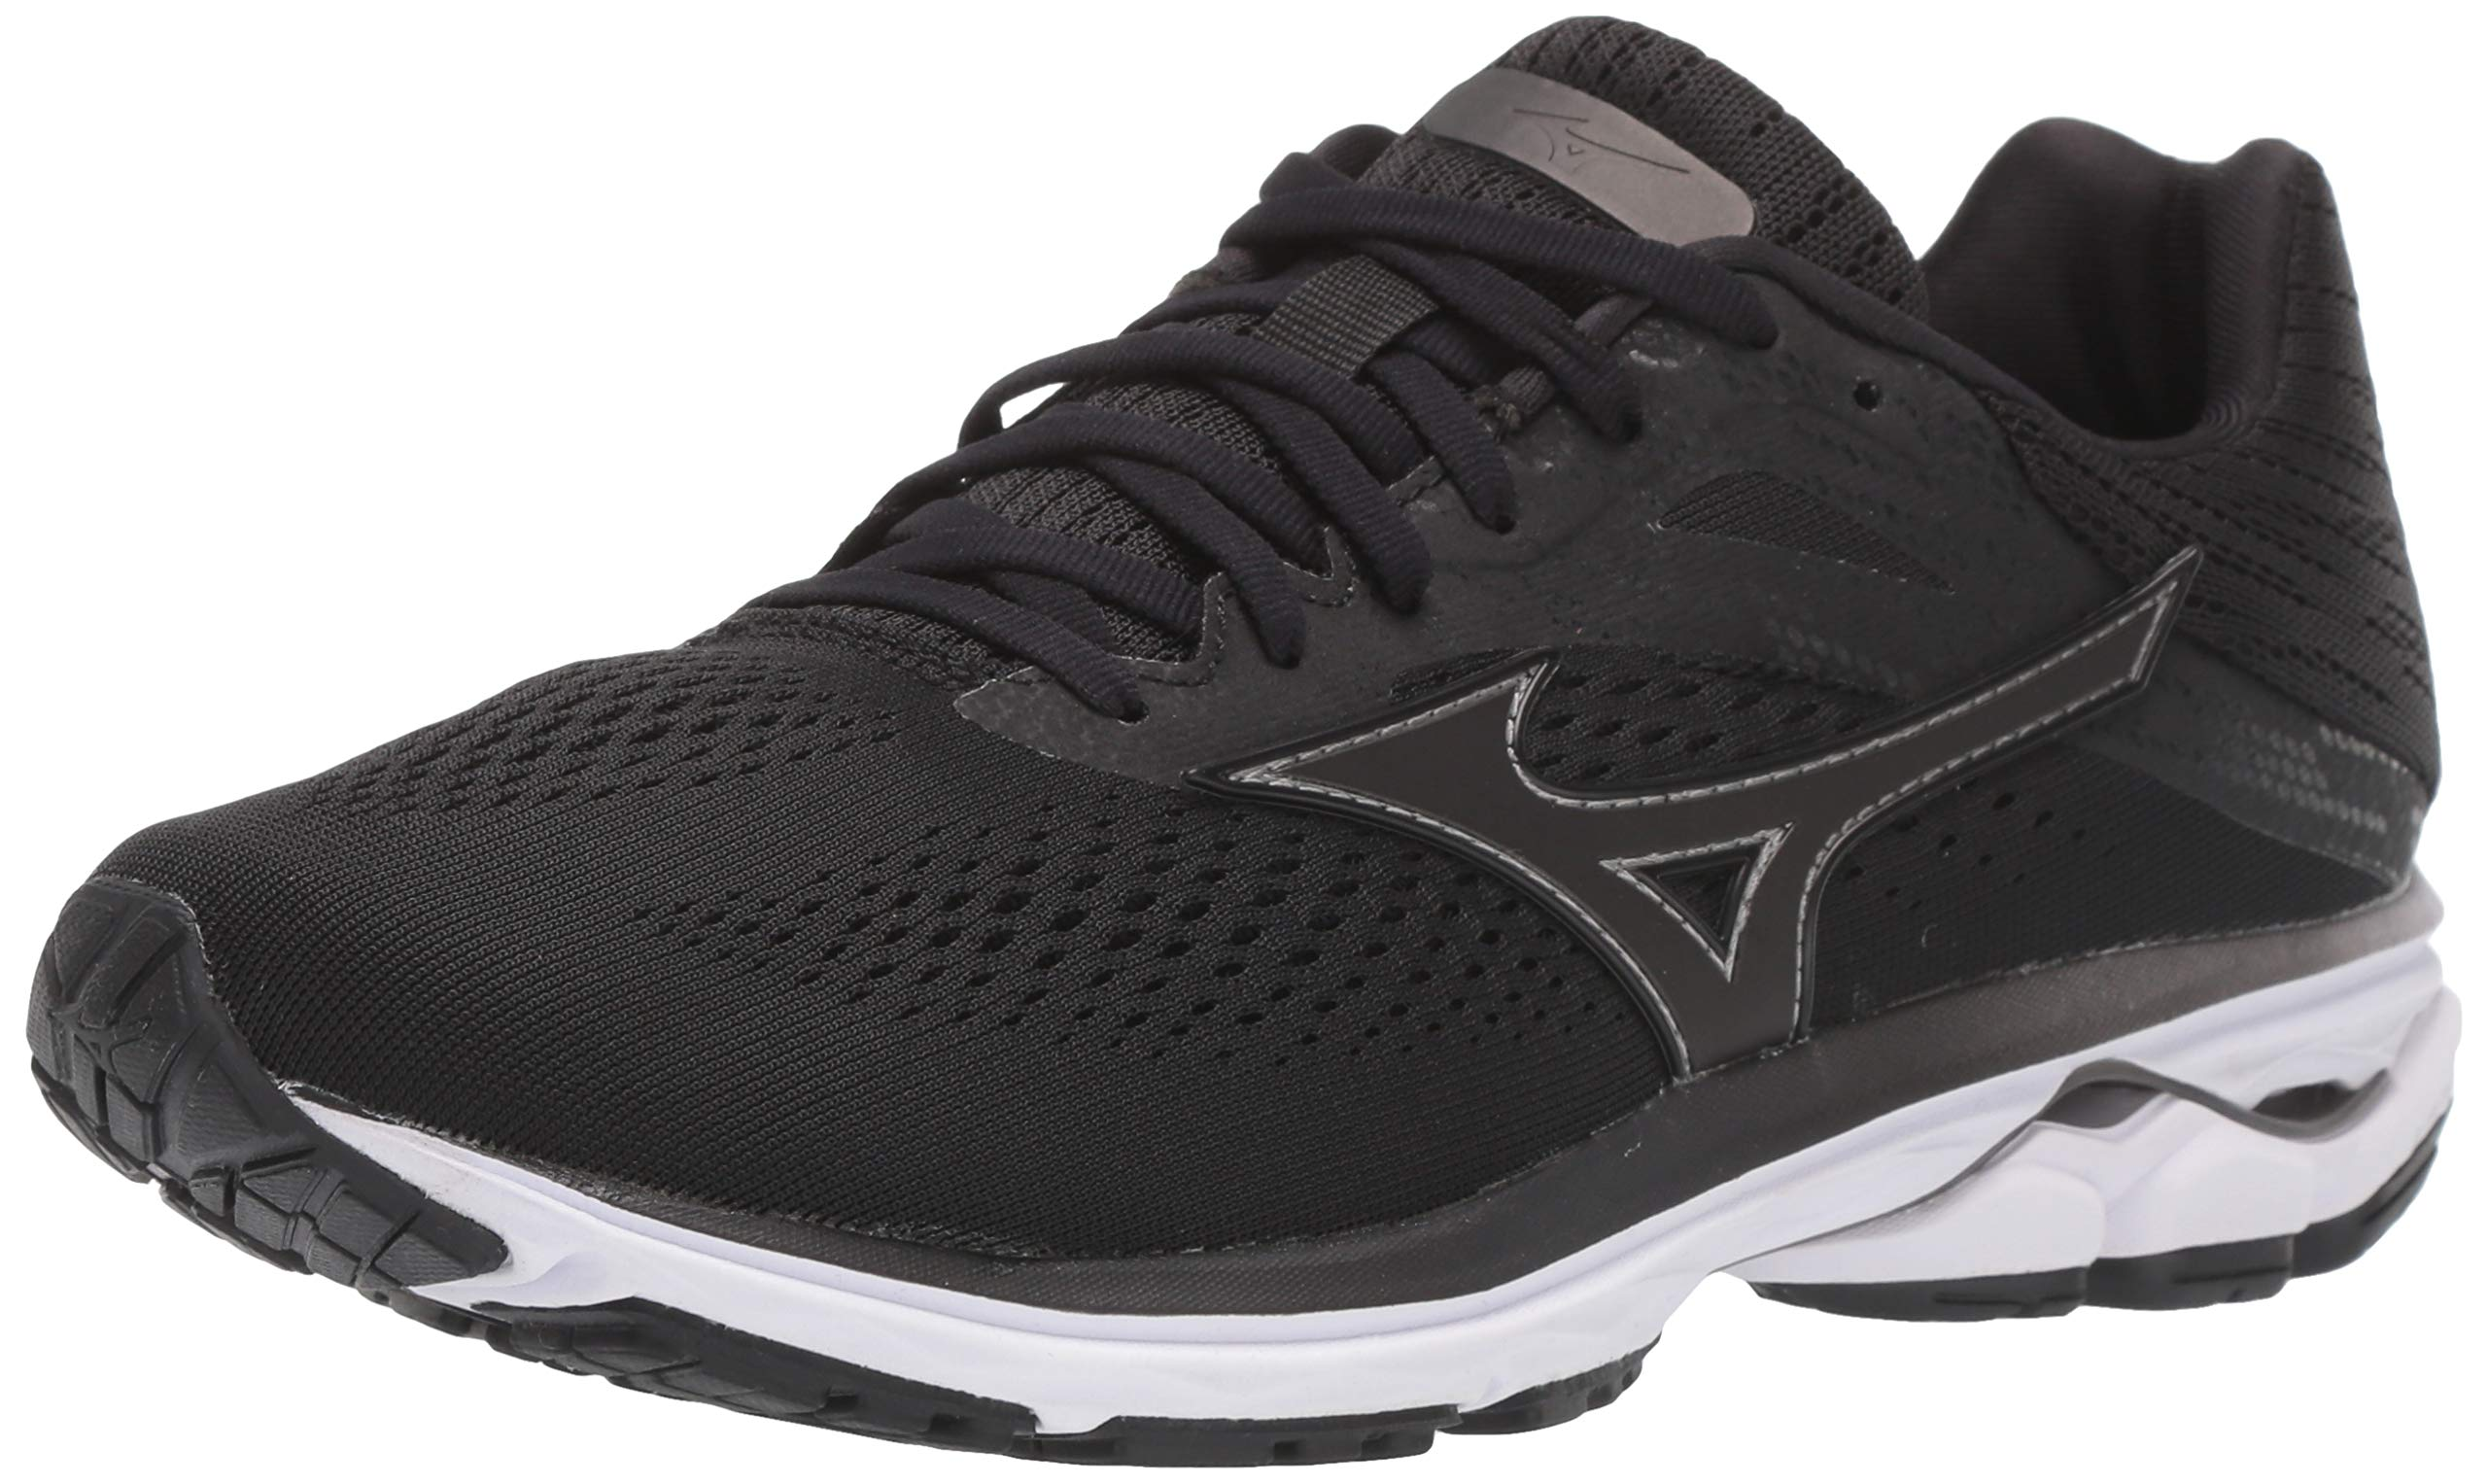 Mizuno Men's Wave Rider 23 Running Shoe, dark shadow, 15 2E US by Mizuno